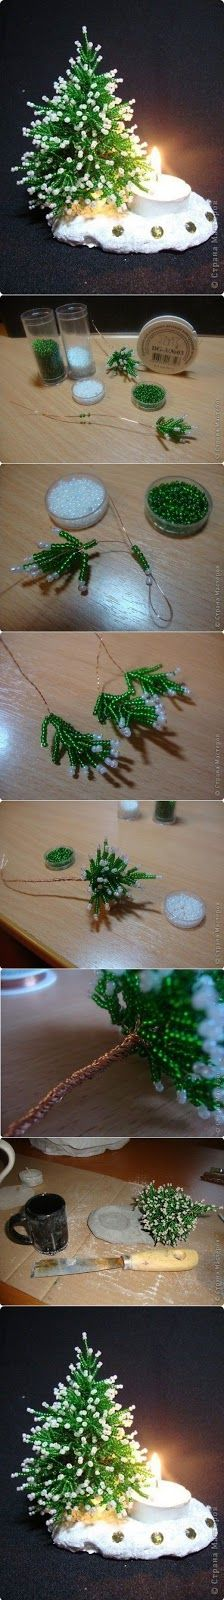 Herringbone Beans Miniature Christmas Tree by Morwen Beaded Christmas Ornaments, Noel Christmas, All Things Christmas, Winter Christmas, Christmas Decorations, Christmas Projects, Holiday Crafts, Miniature Christmas Trees, Wire Trees